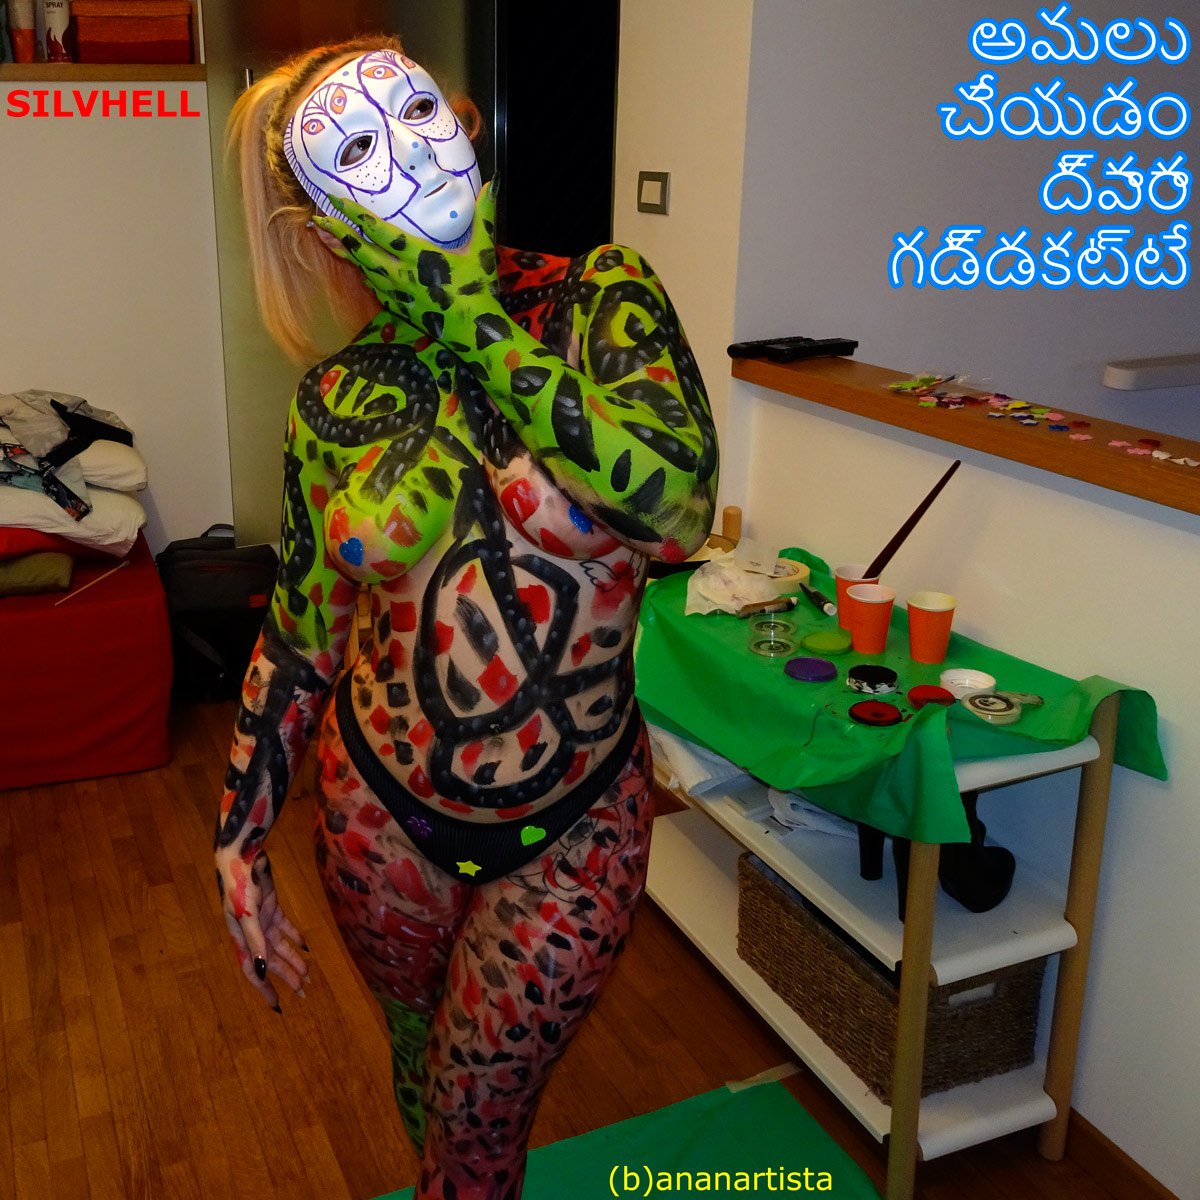 silvhell sgh suicide girl body painting by (b)ananartista sbuff